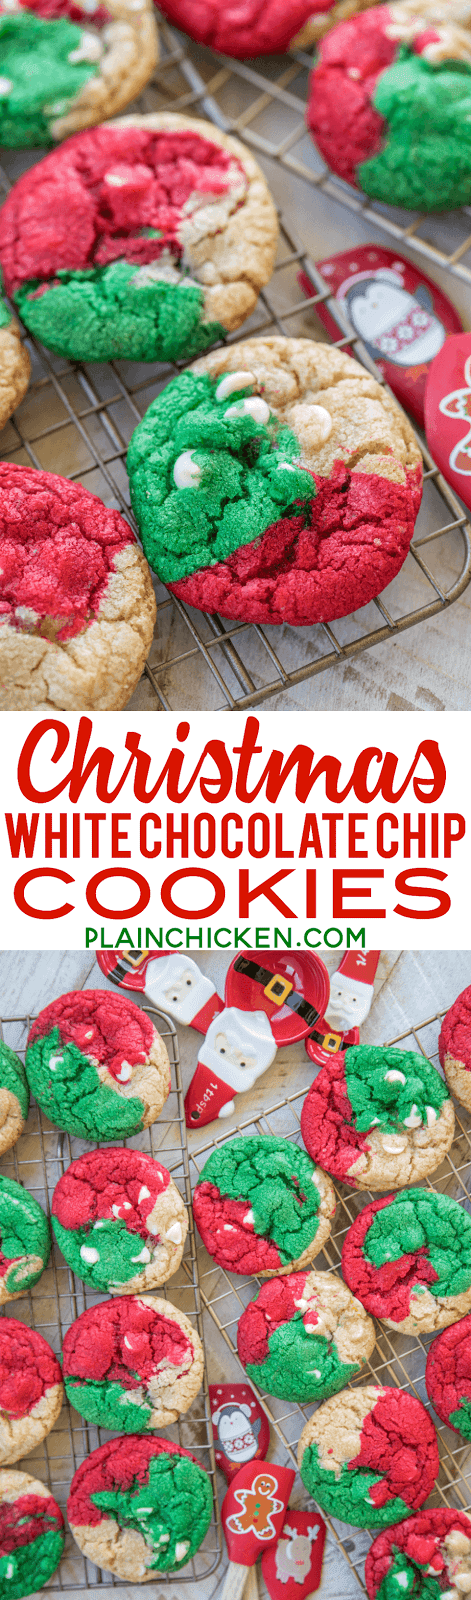 Christmas White Chocolate Chip Cookies Plain Chicken